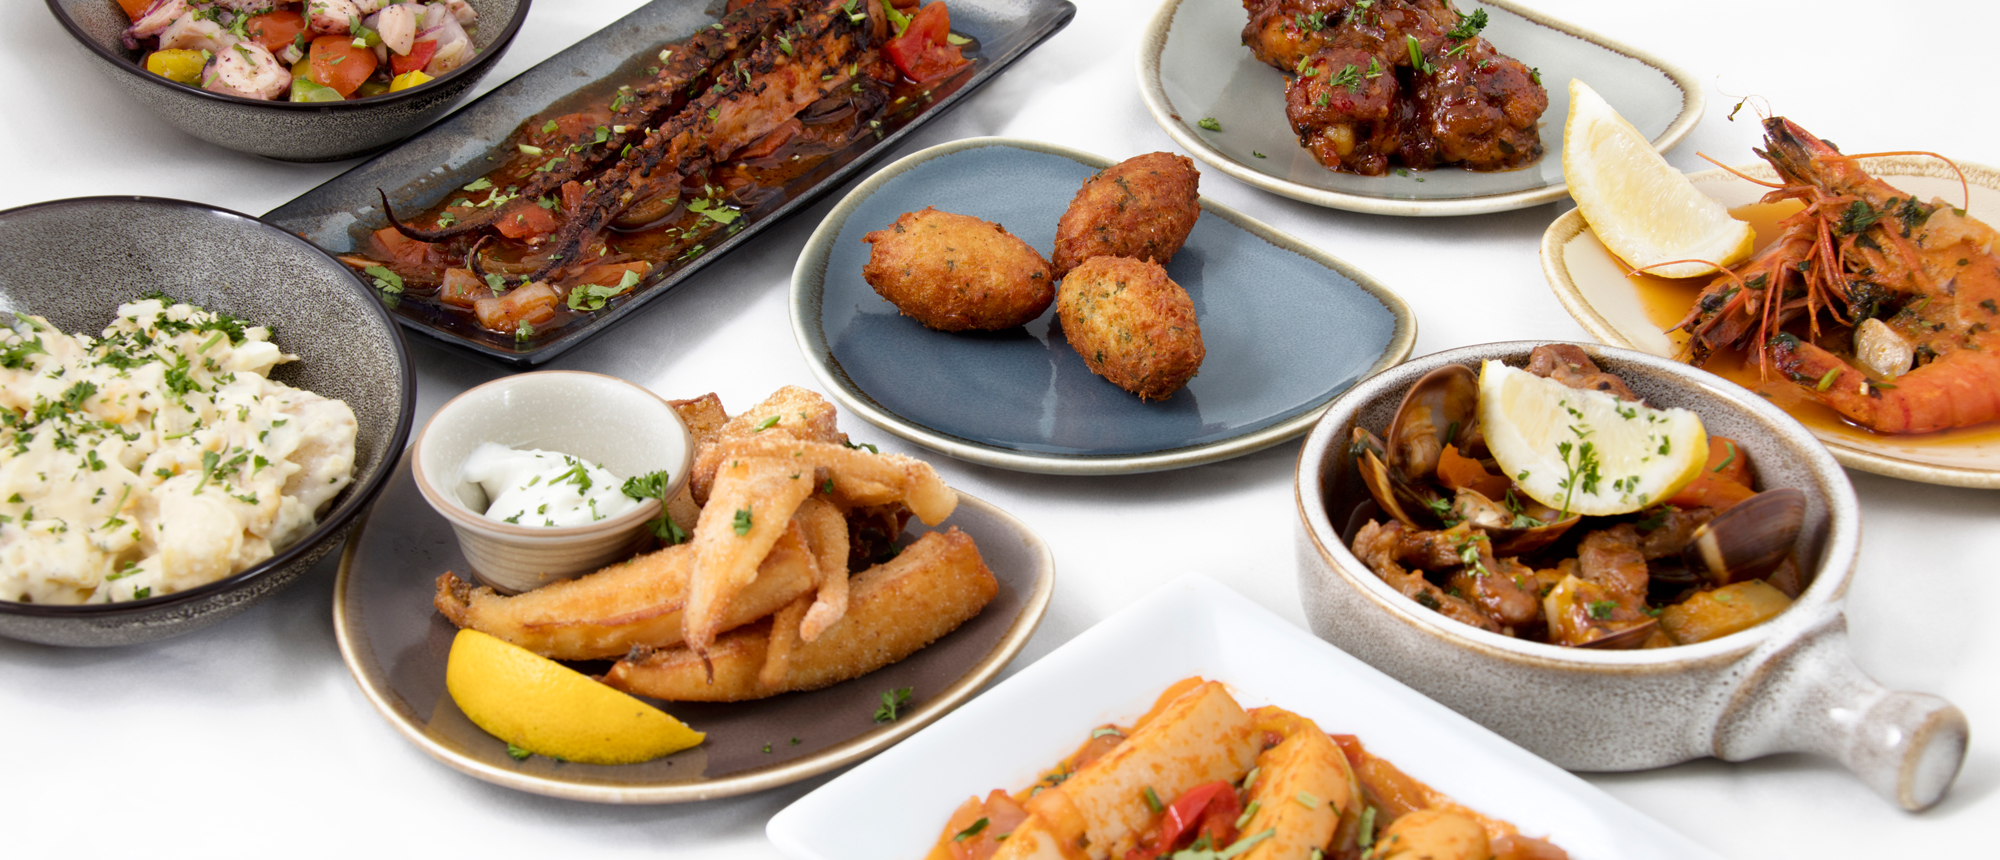 Selection of tapas dishes from our lunch menu